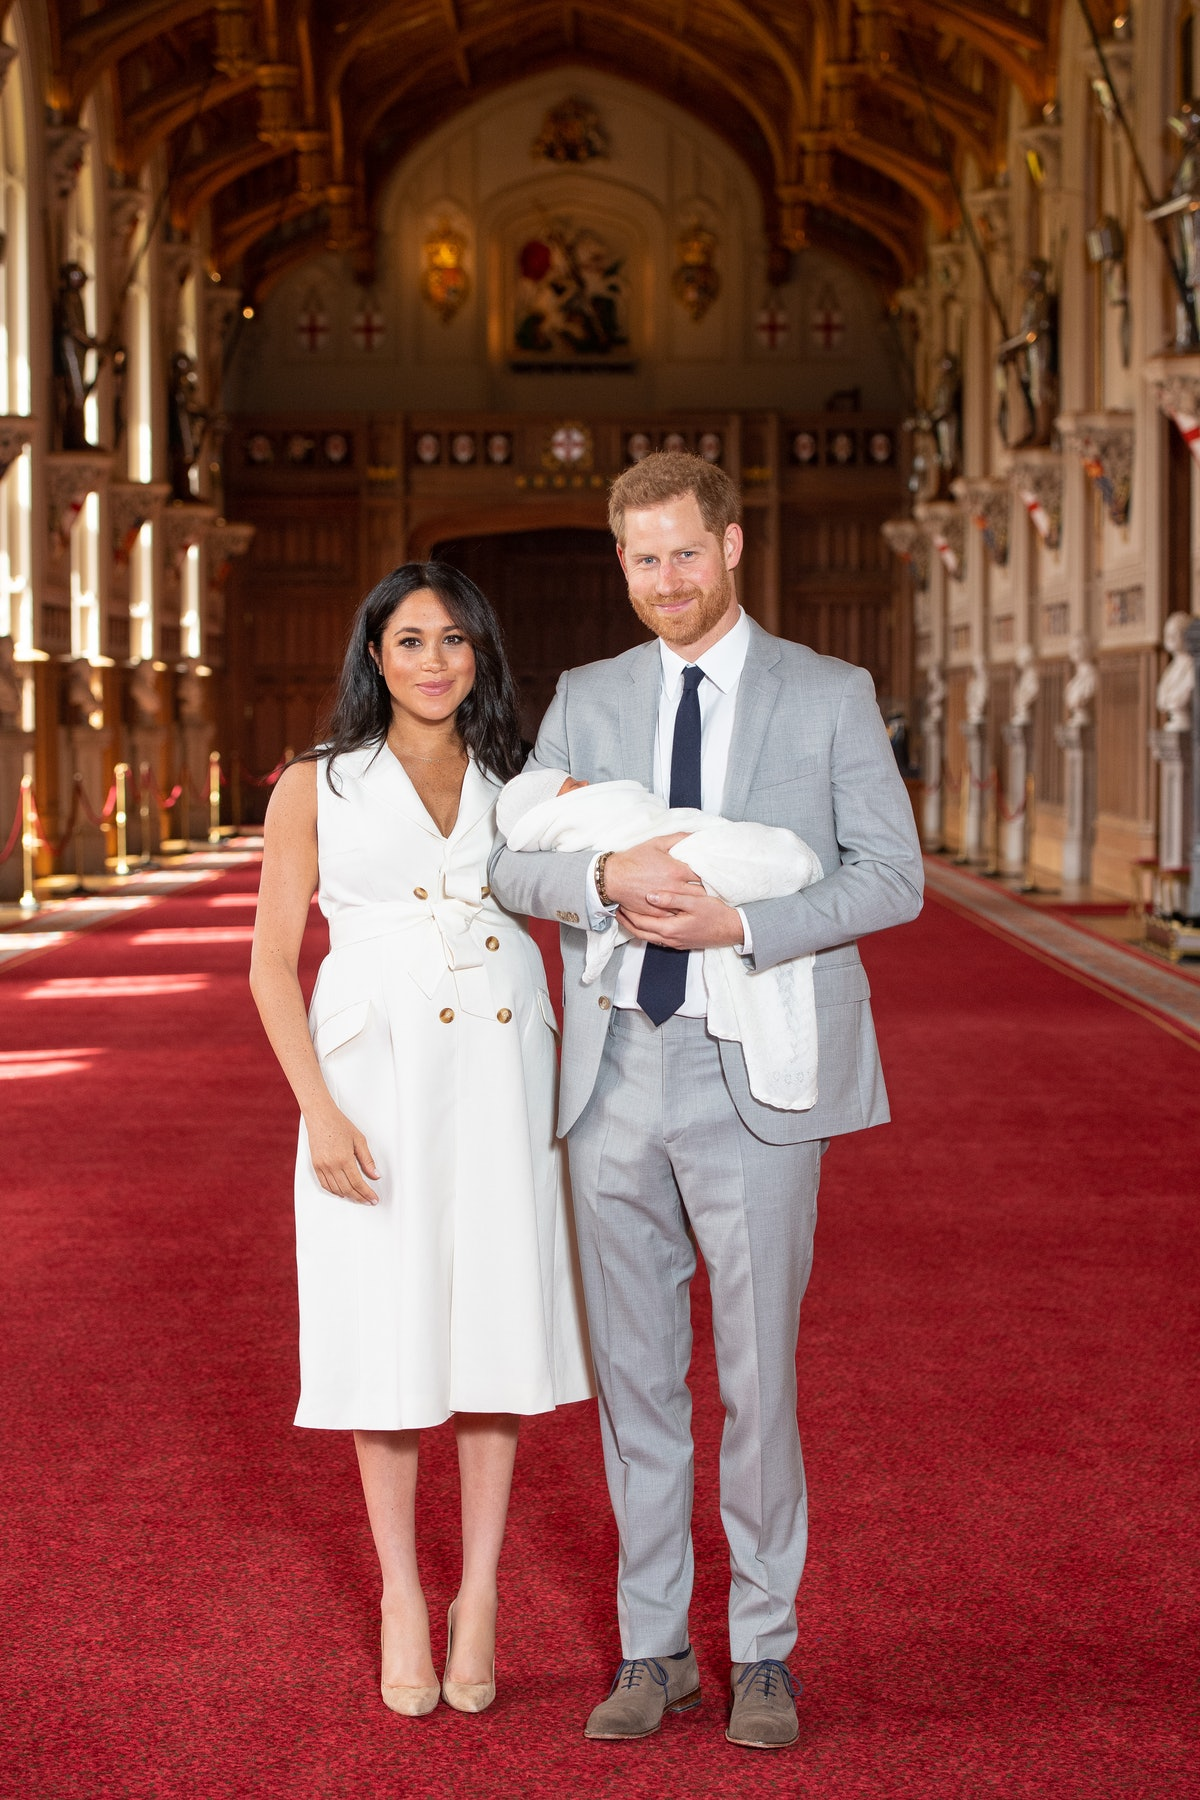 The Duke and Duchess formally announced the birth of their first child in May 2019.